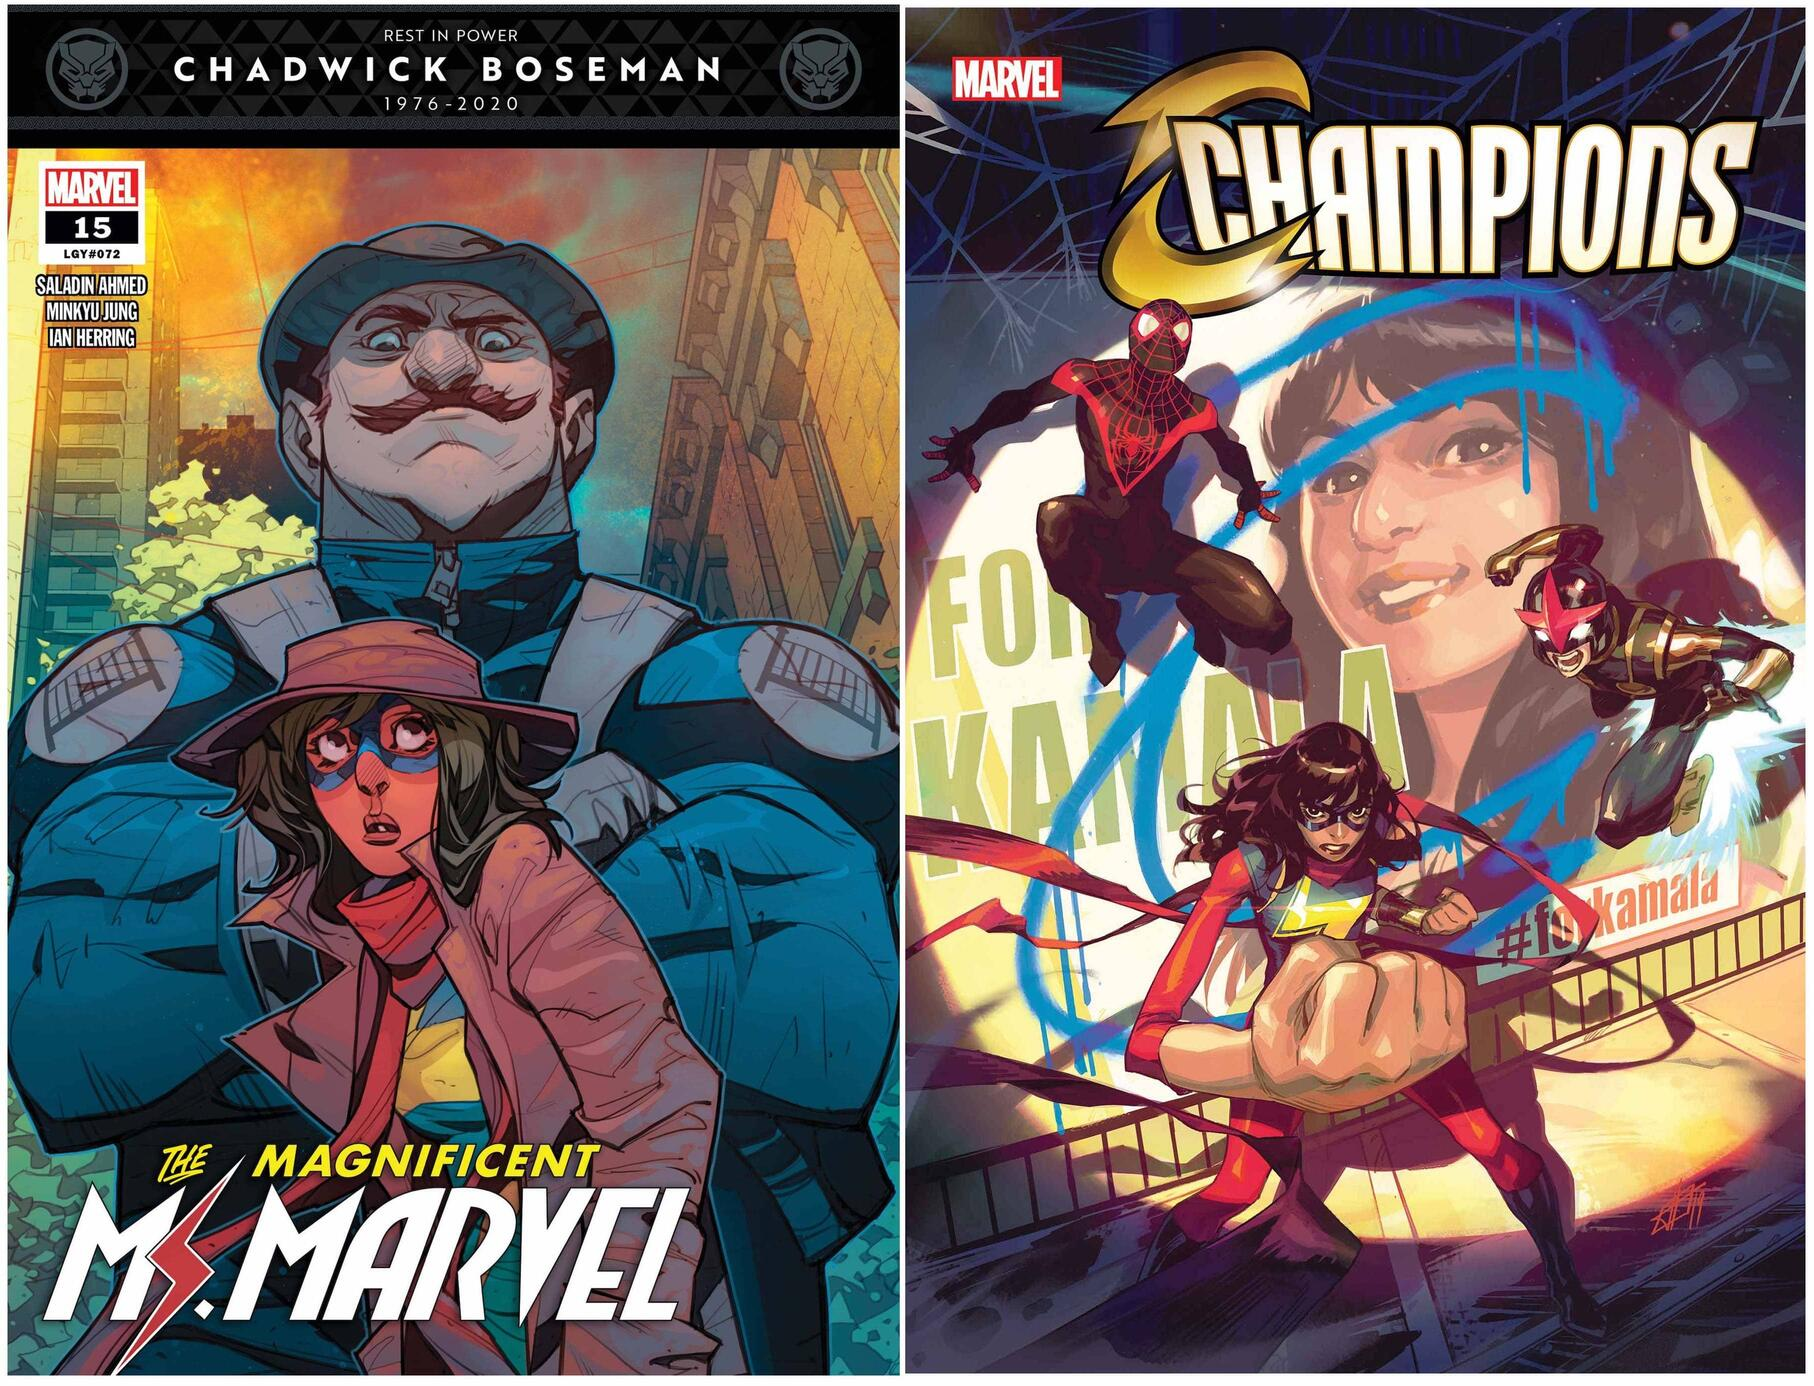 MAGNIFICENT MS. MARVEL #15 and CHAMPIONS #1